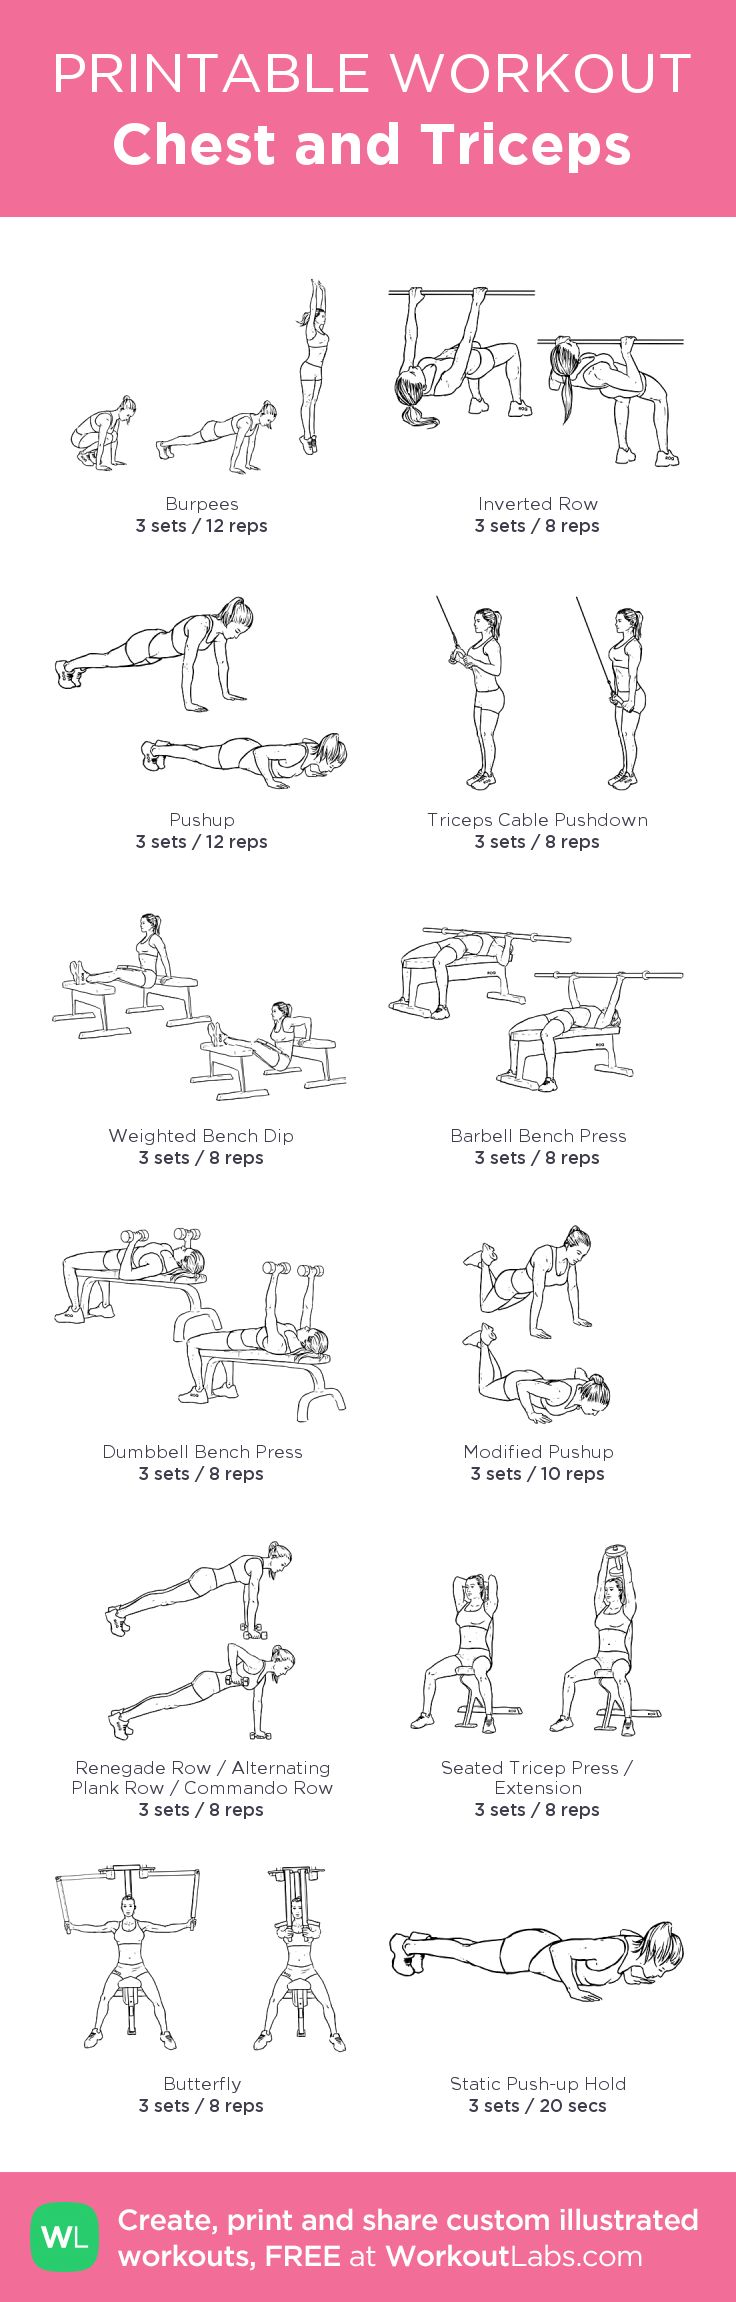 The secret to building sexier biceps for women and men Chest and Triceps: my custom printable workout by WorkoutLabs #workoutlabs #customworkout